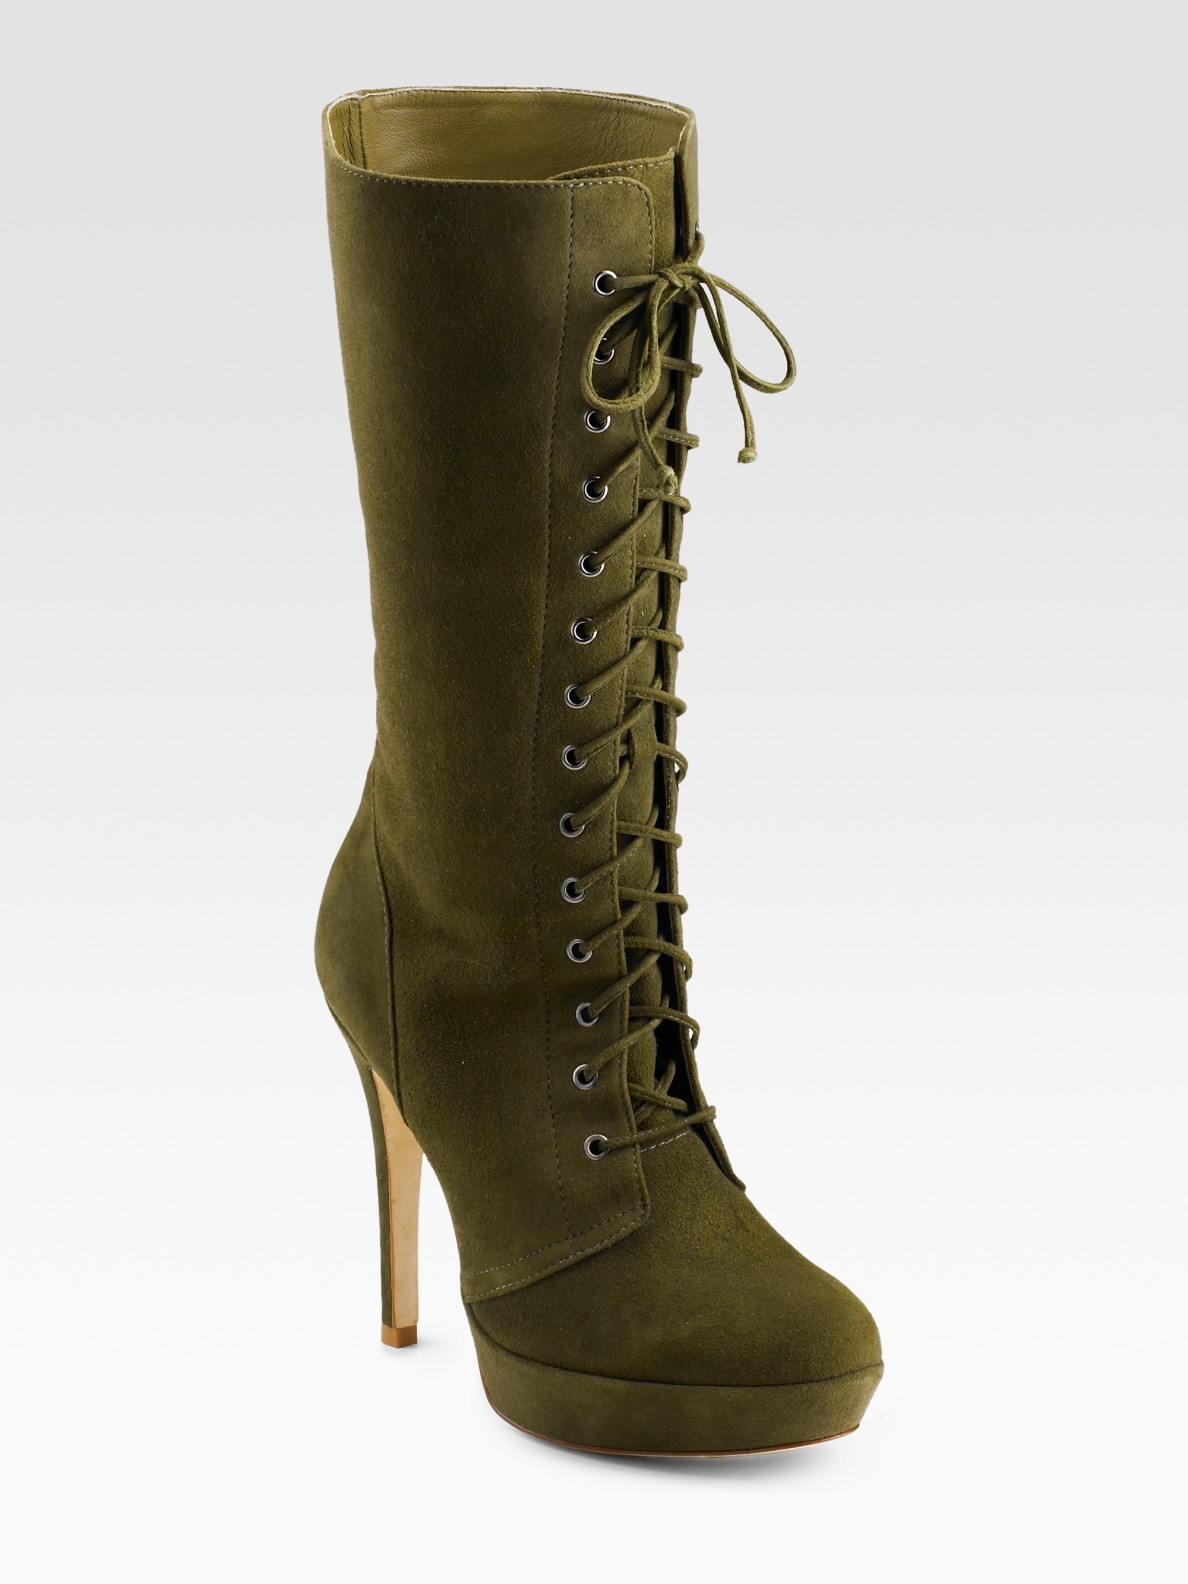 Alexandre Birman Lace Up Suede Boots In Green Lyst